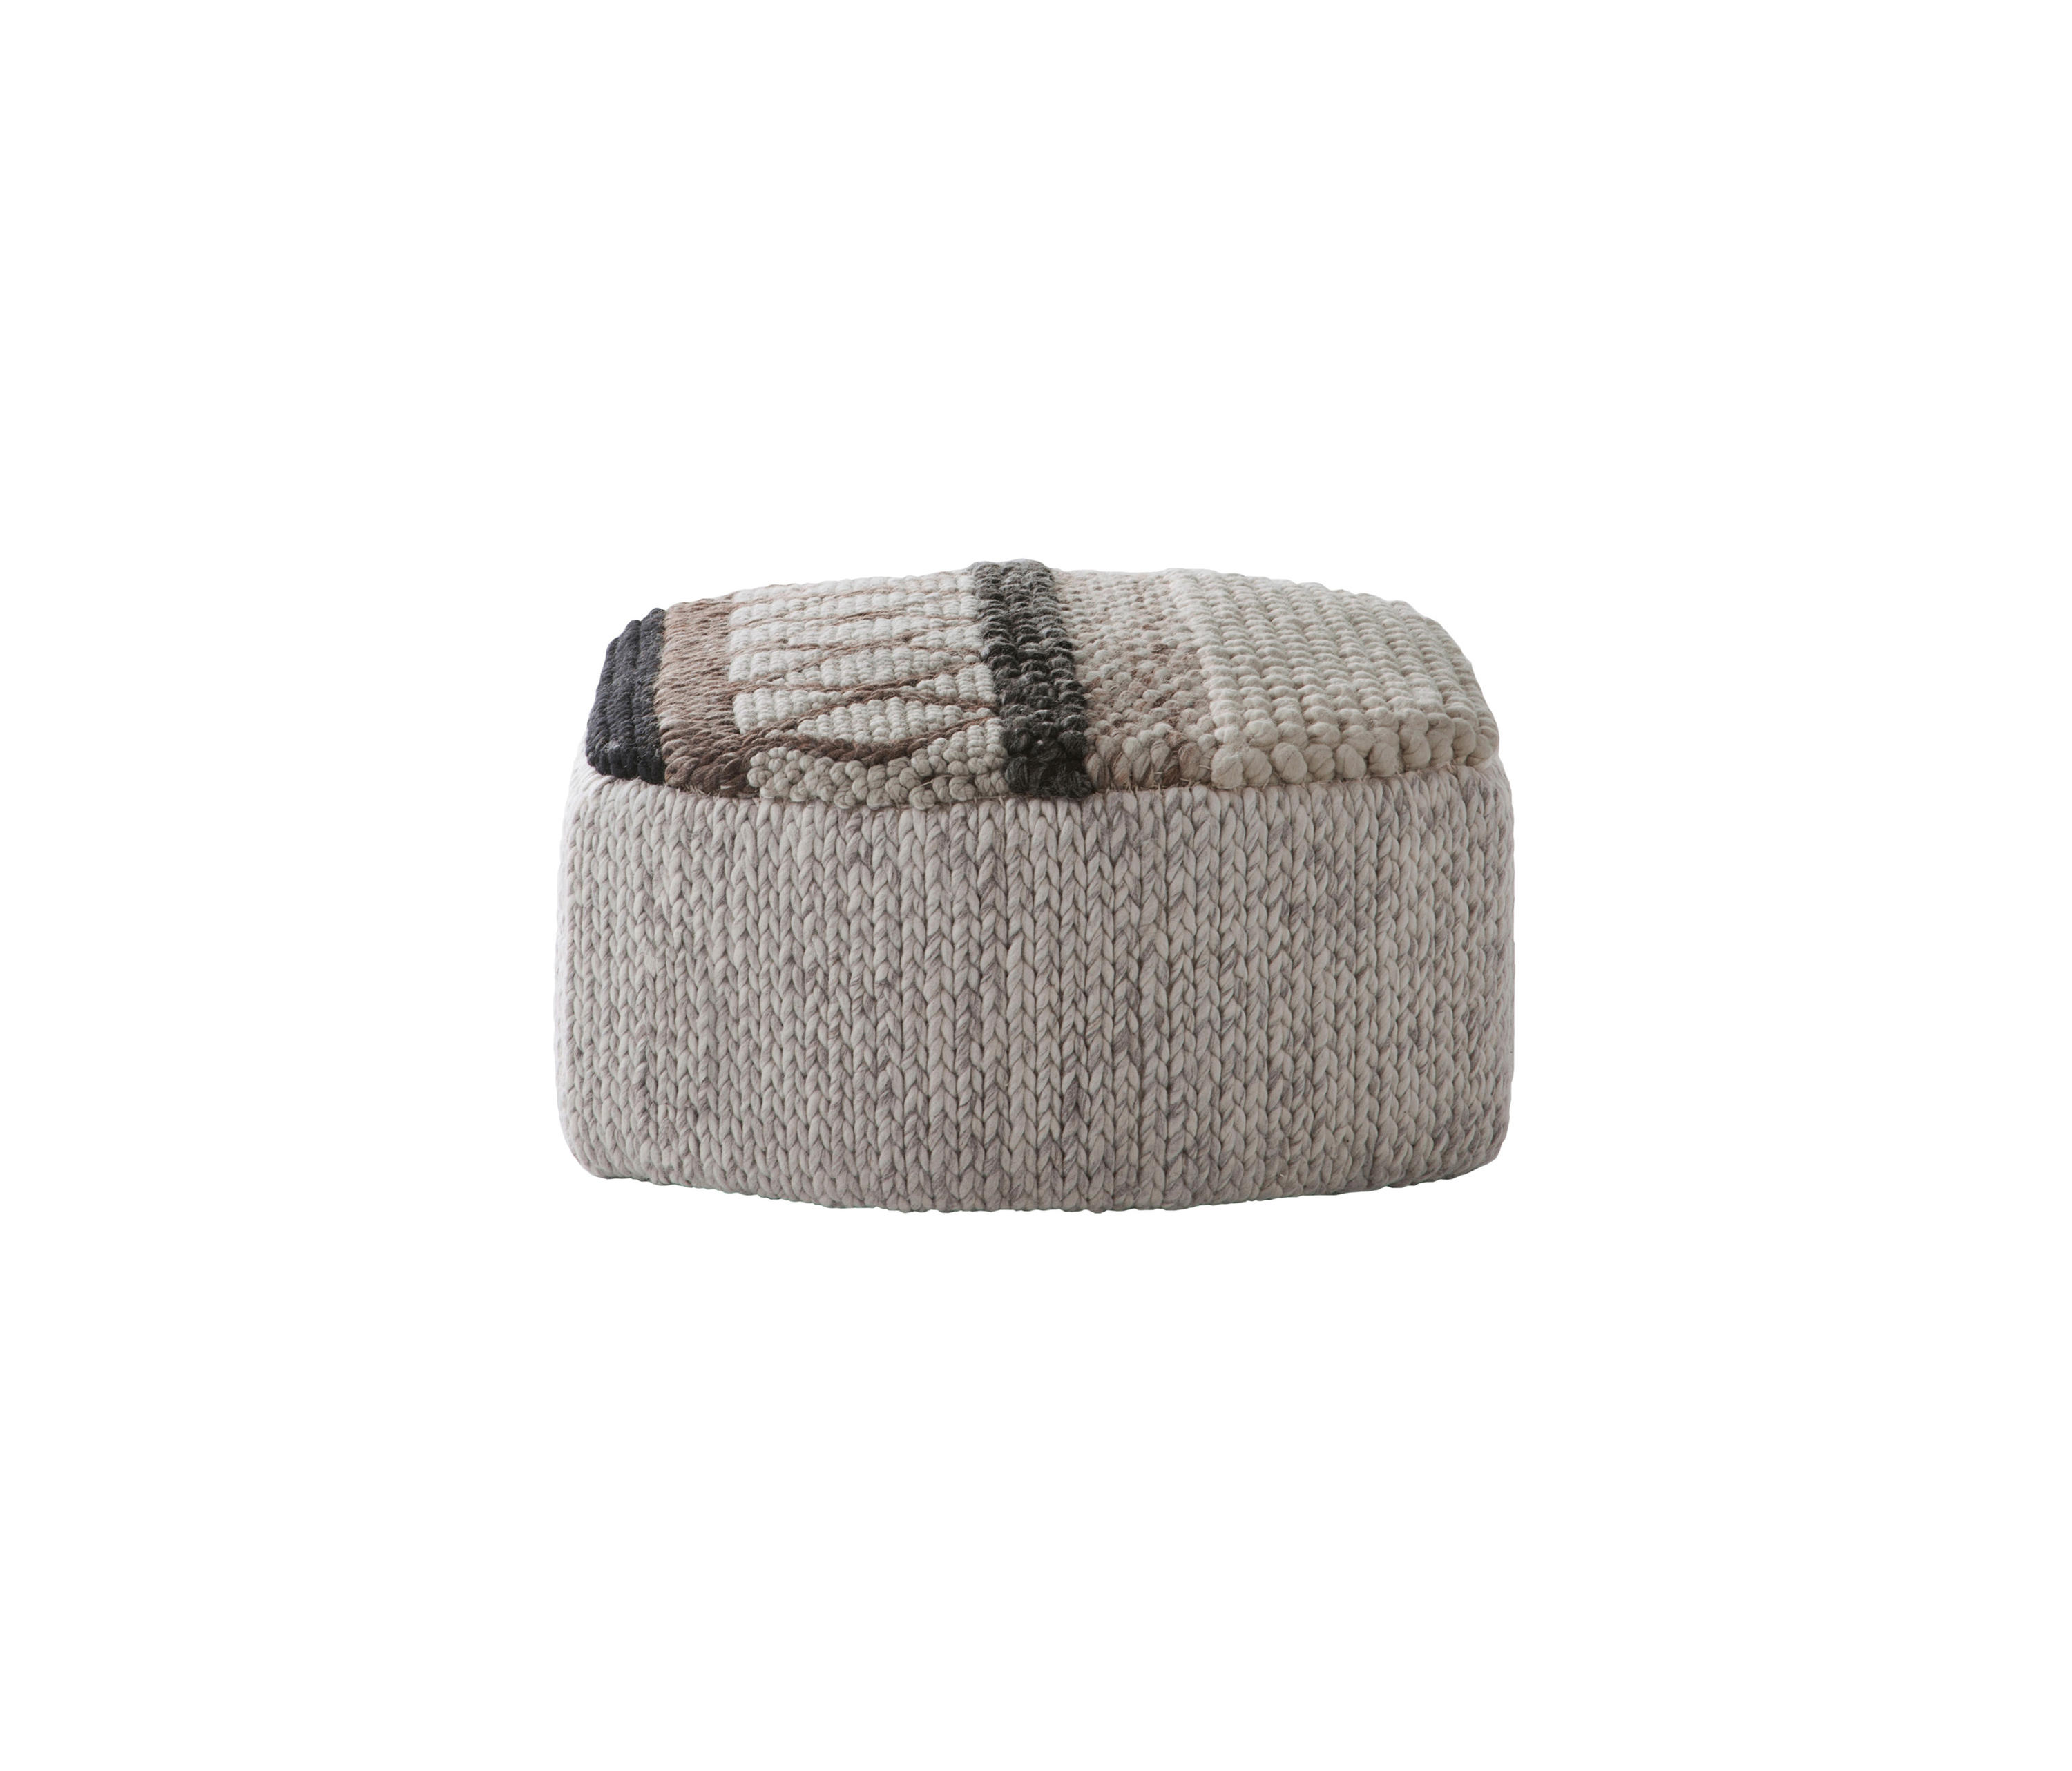 mangas original pouf caramelo mp1n natural 4 poufs from. Black Bedroom Furniture Sets. Home Design Ideas